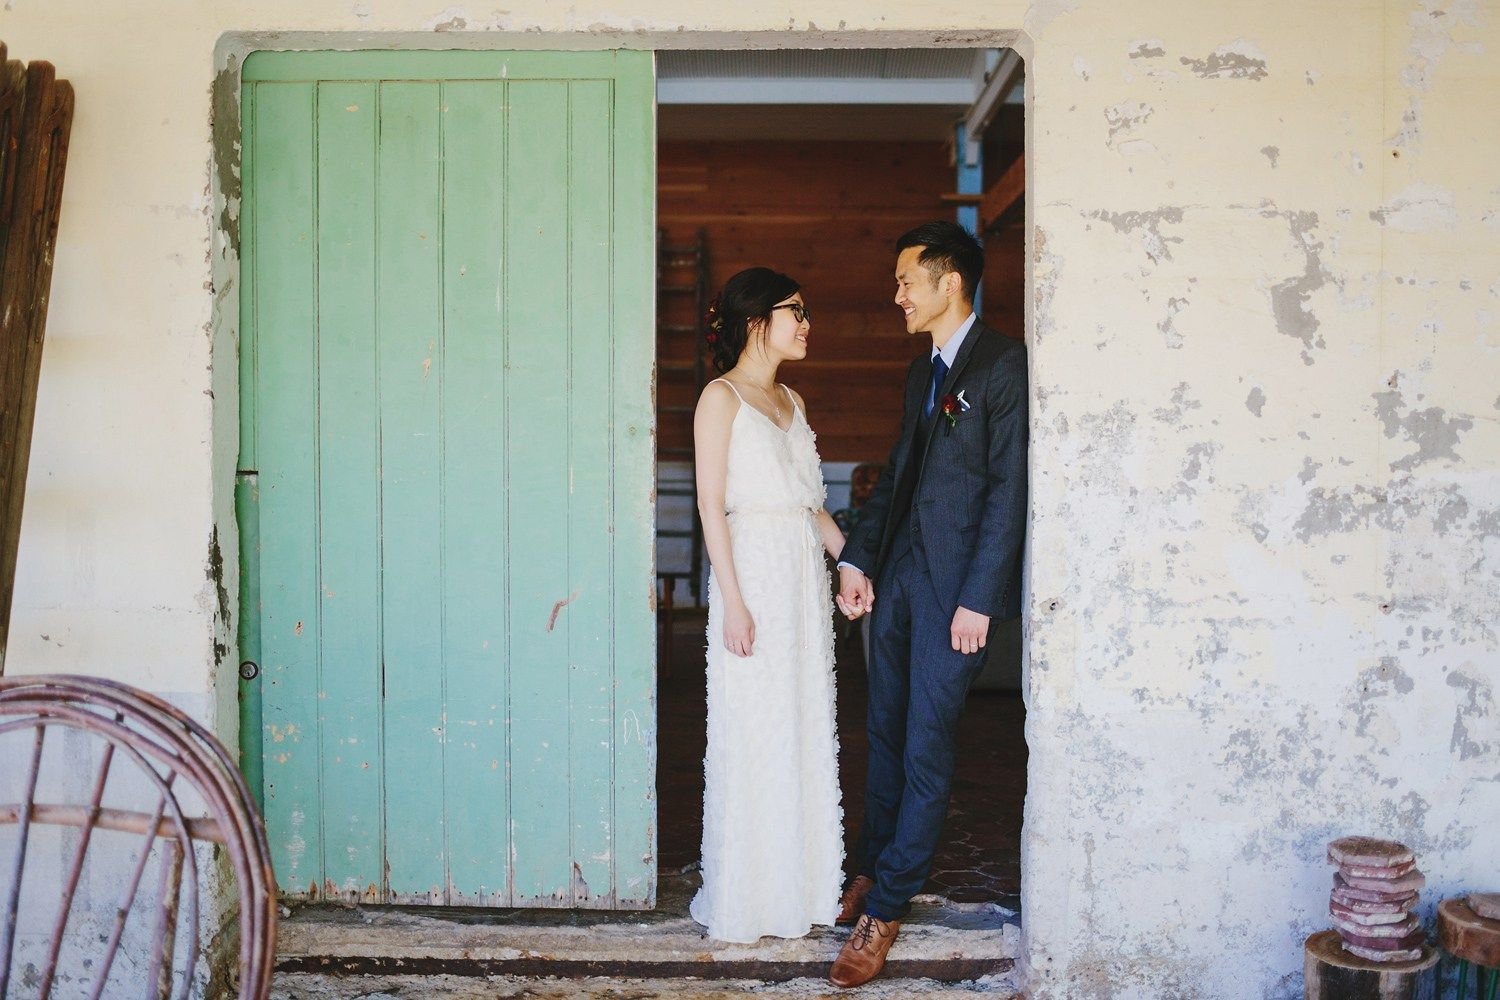 Bride and groom wedding photo idea | fabmood.com #wedding #rusticwedding #factorywedding